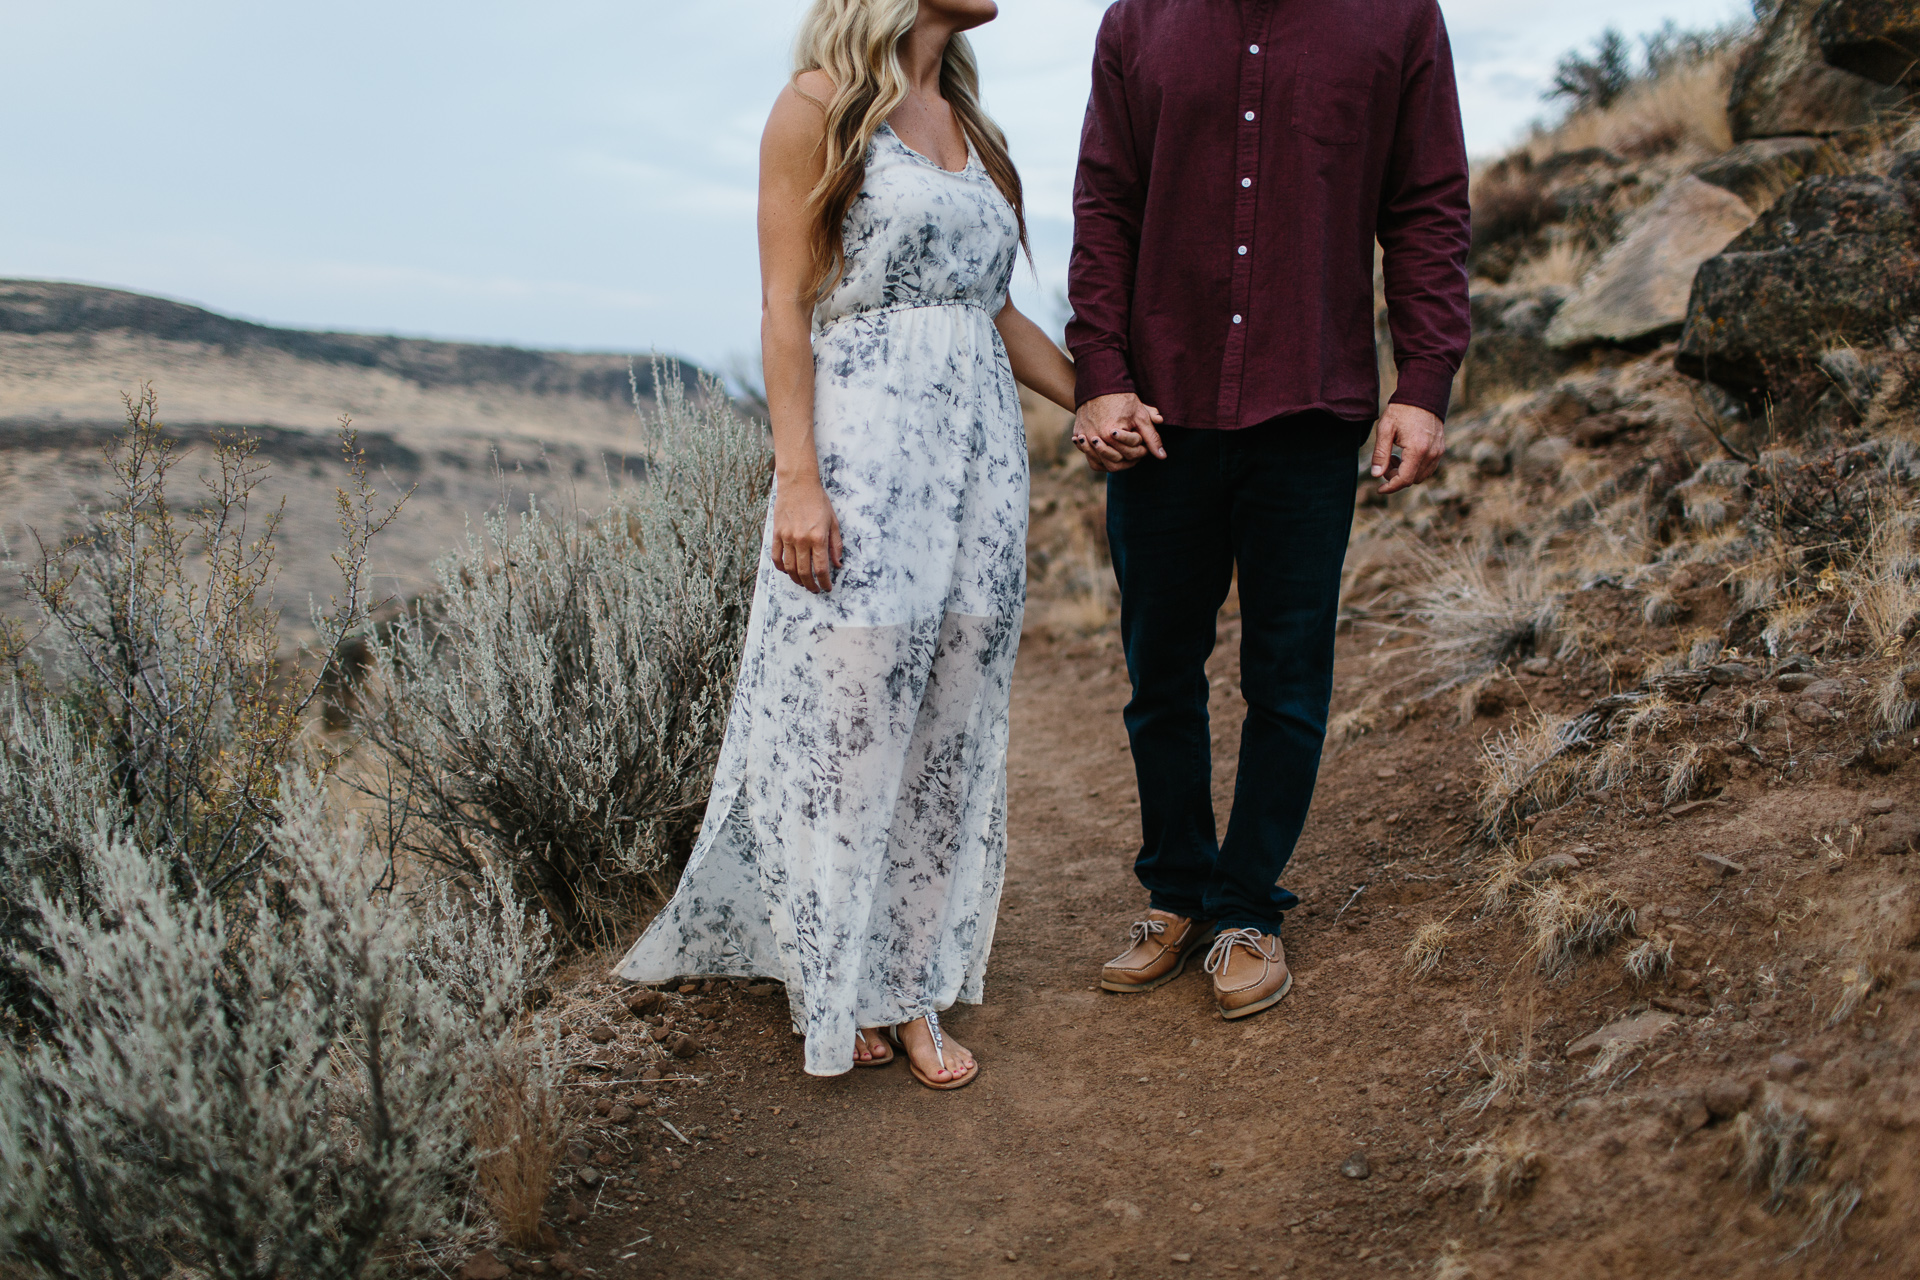 engagement photos in Eastern Washington by Jess Hunter, intimate wedding photographer in Washington state, Seattle elopement photographer, emotive portrait photography, artistic wedding photography, Pacific Northwest elopement photographer, desert engagement session, engagement outfit inspiration, photography by Jess Hunter - Jessica L Hunter